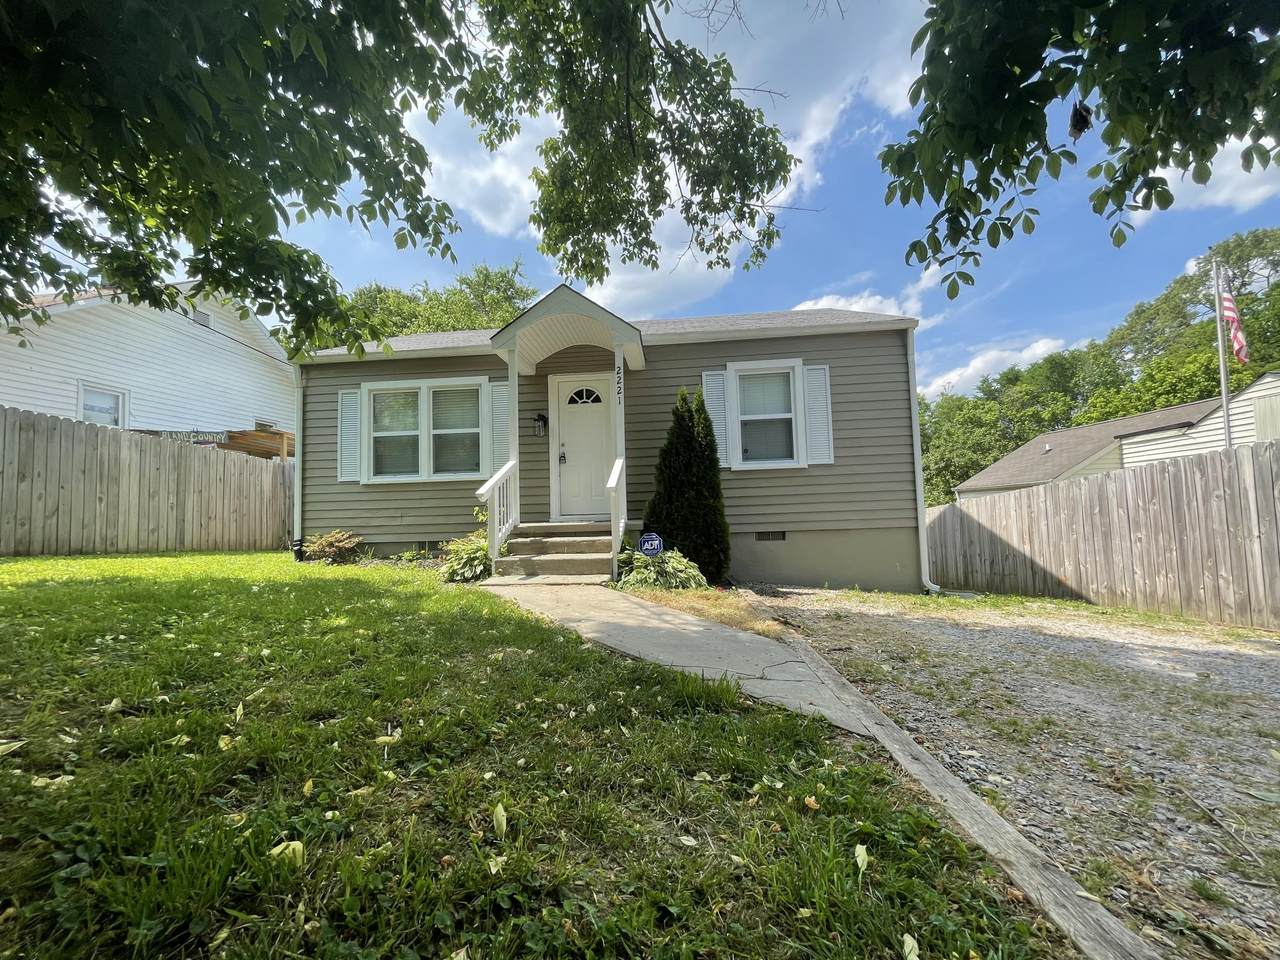 2221 Aster Rd - Photo 1